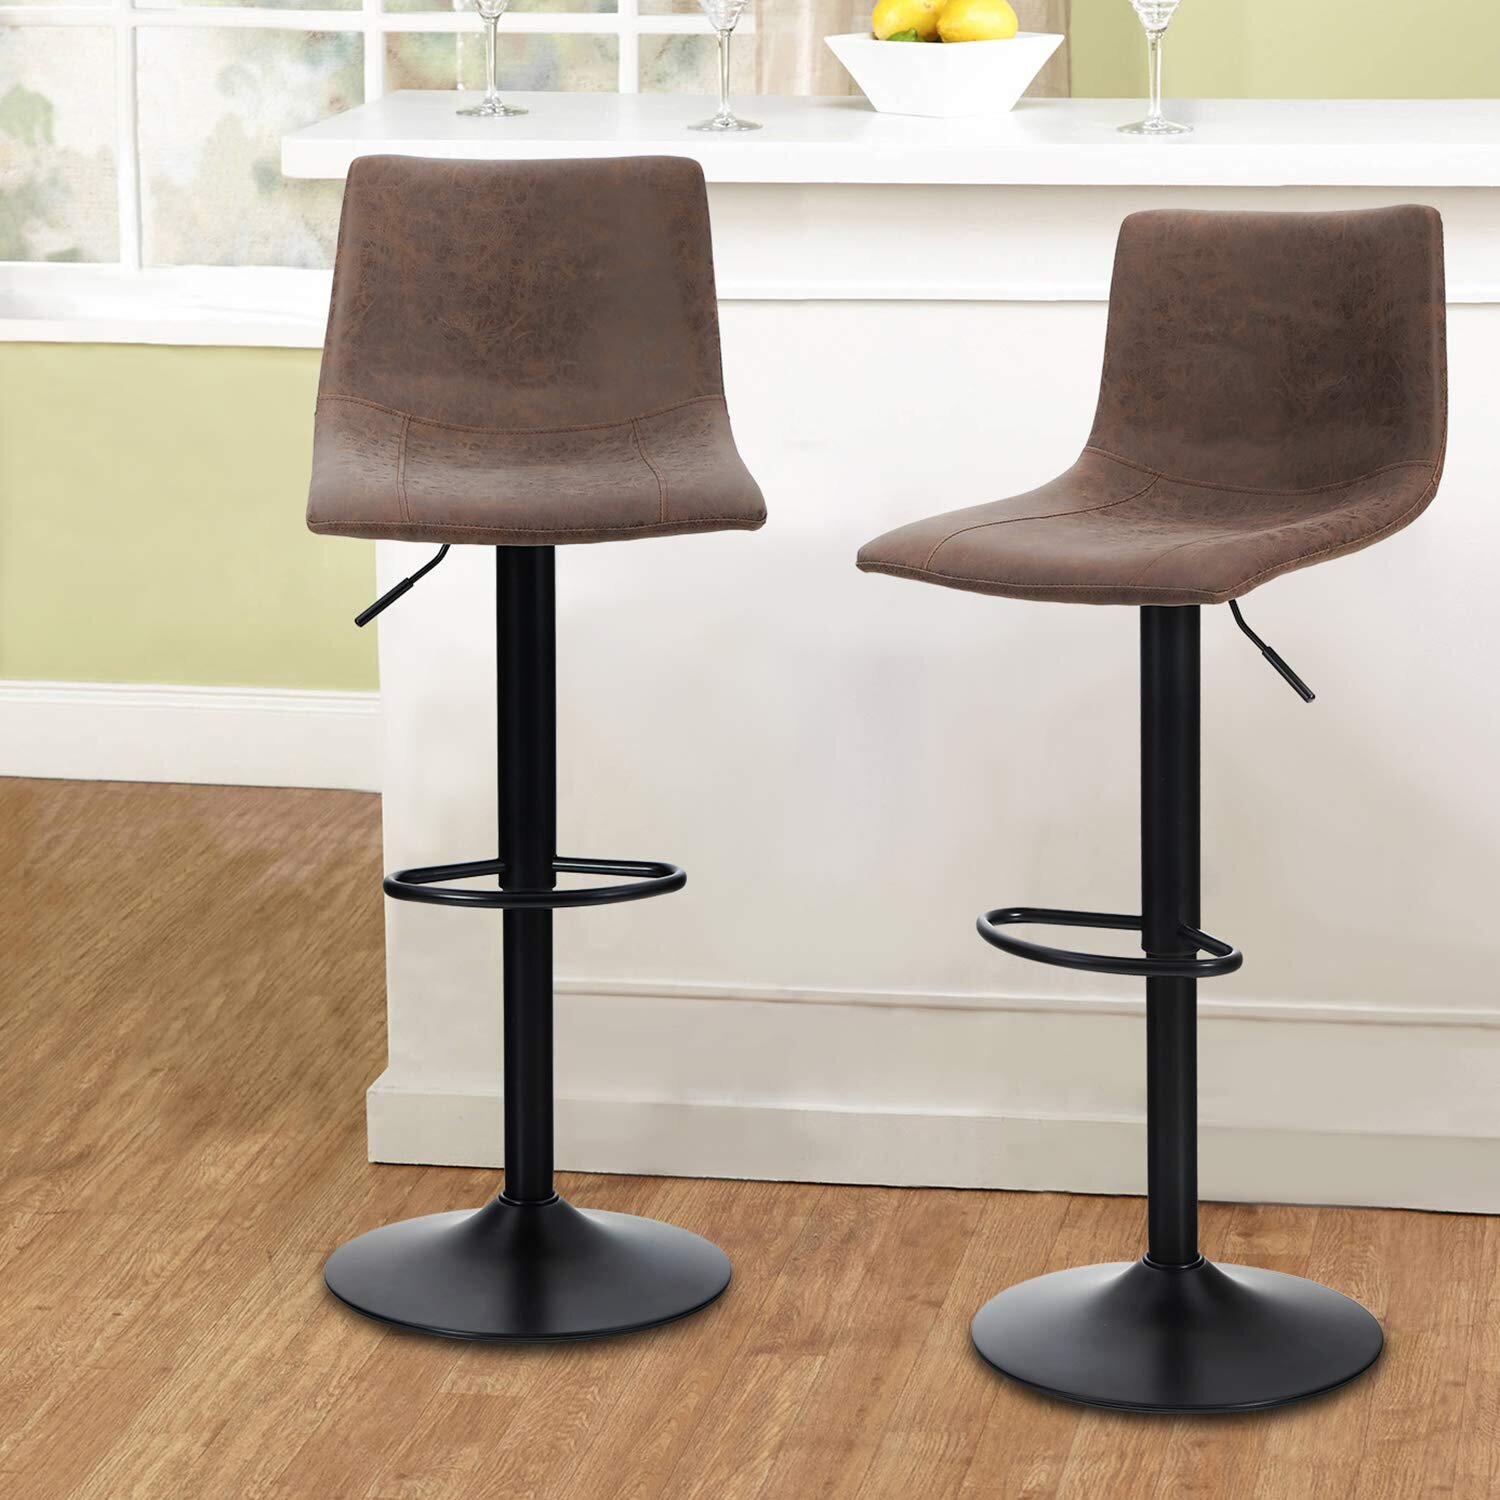 Swivel Bar Stools Set Of 9 For Kitchen Counter Adjustable Counter Height  Bar Chairs With Back Tall Barstools Pu Leather Kitchen Island Stools